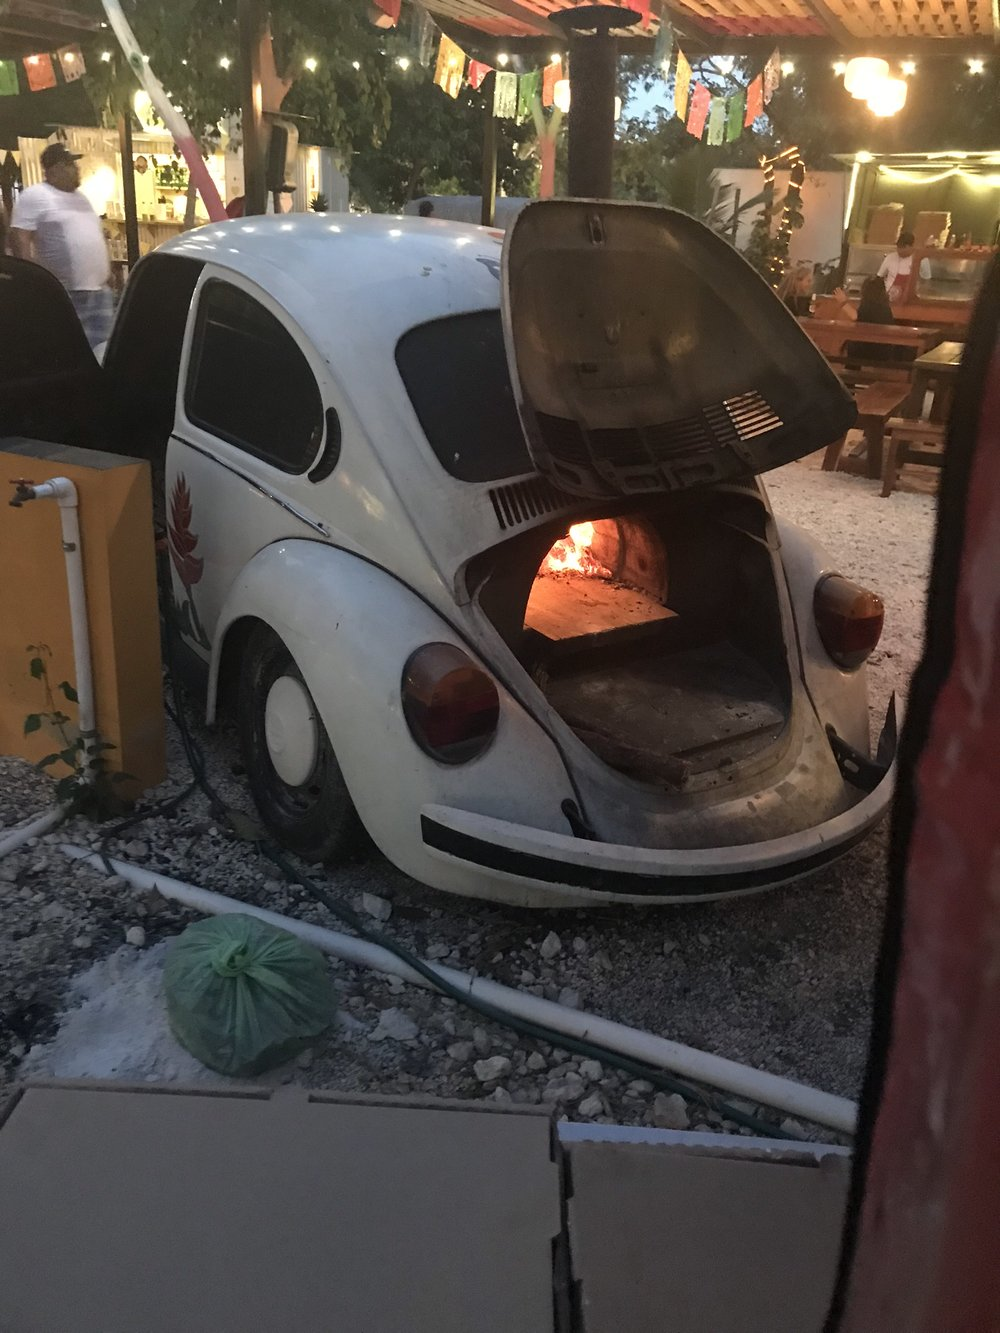 One of the food trucks turned a VW bug into a pizza oven.